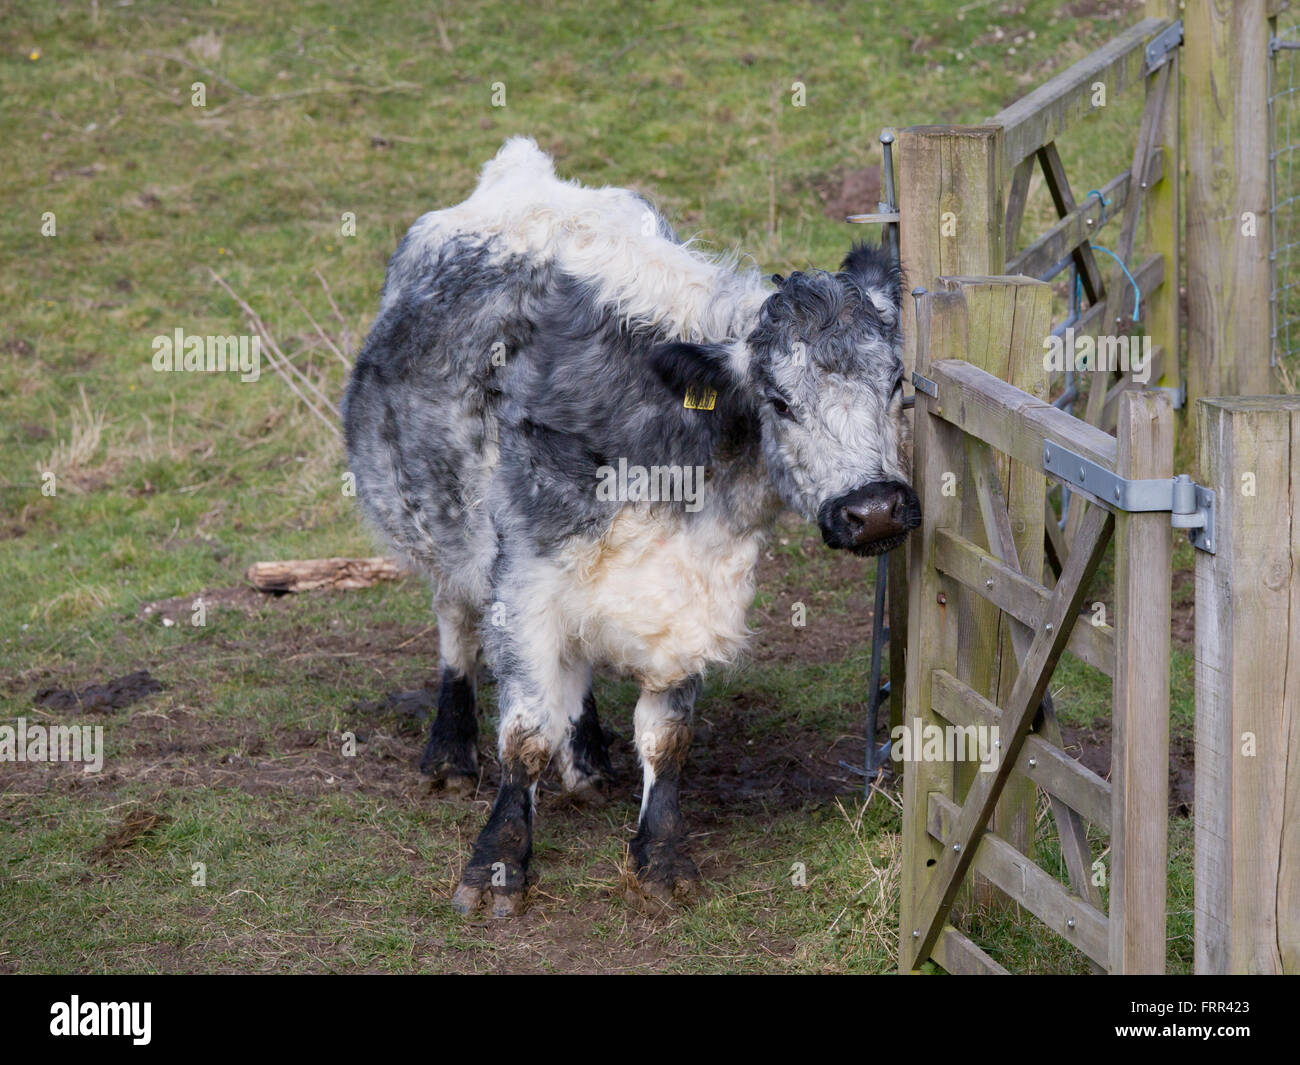 Grey And White Cow Stock Photos & Grey And White Cow Stock